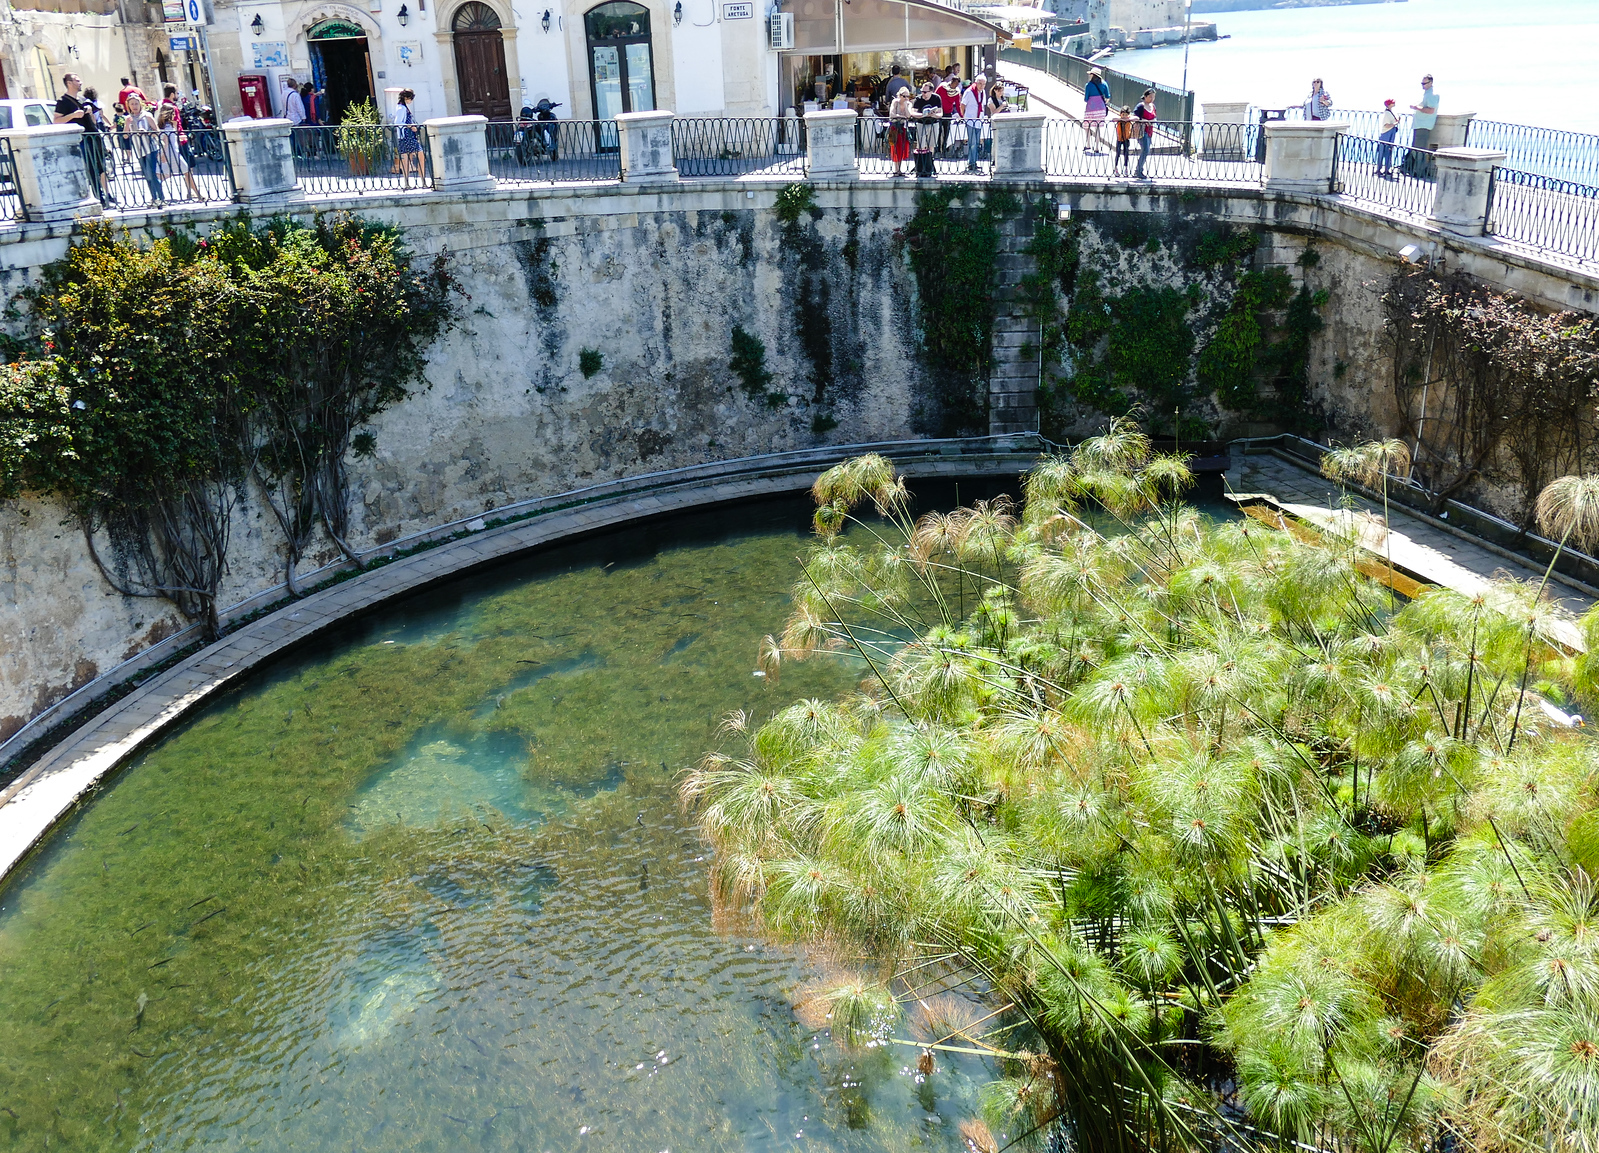 A freshwater spring by the sea in Syracuse surrounded by concrete walls and columns.